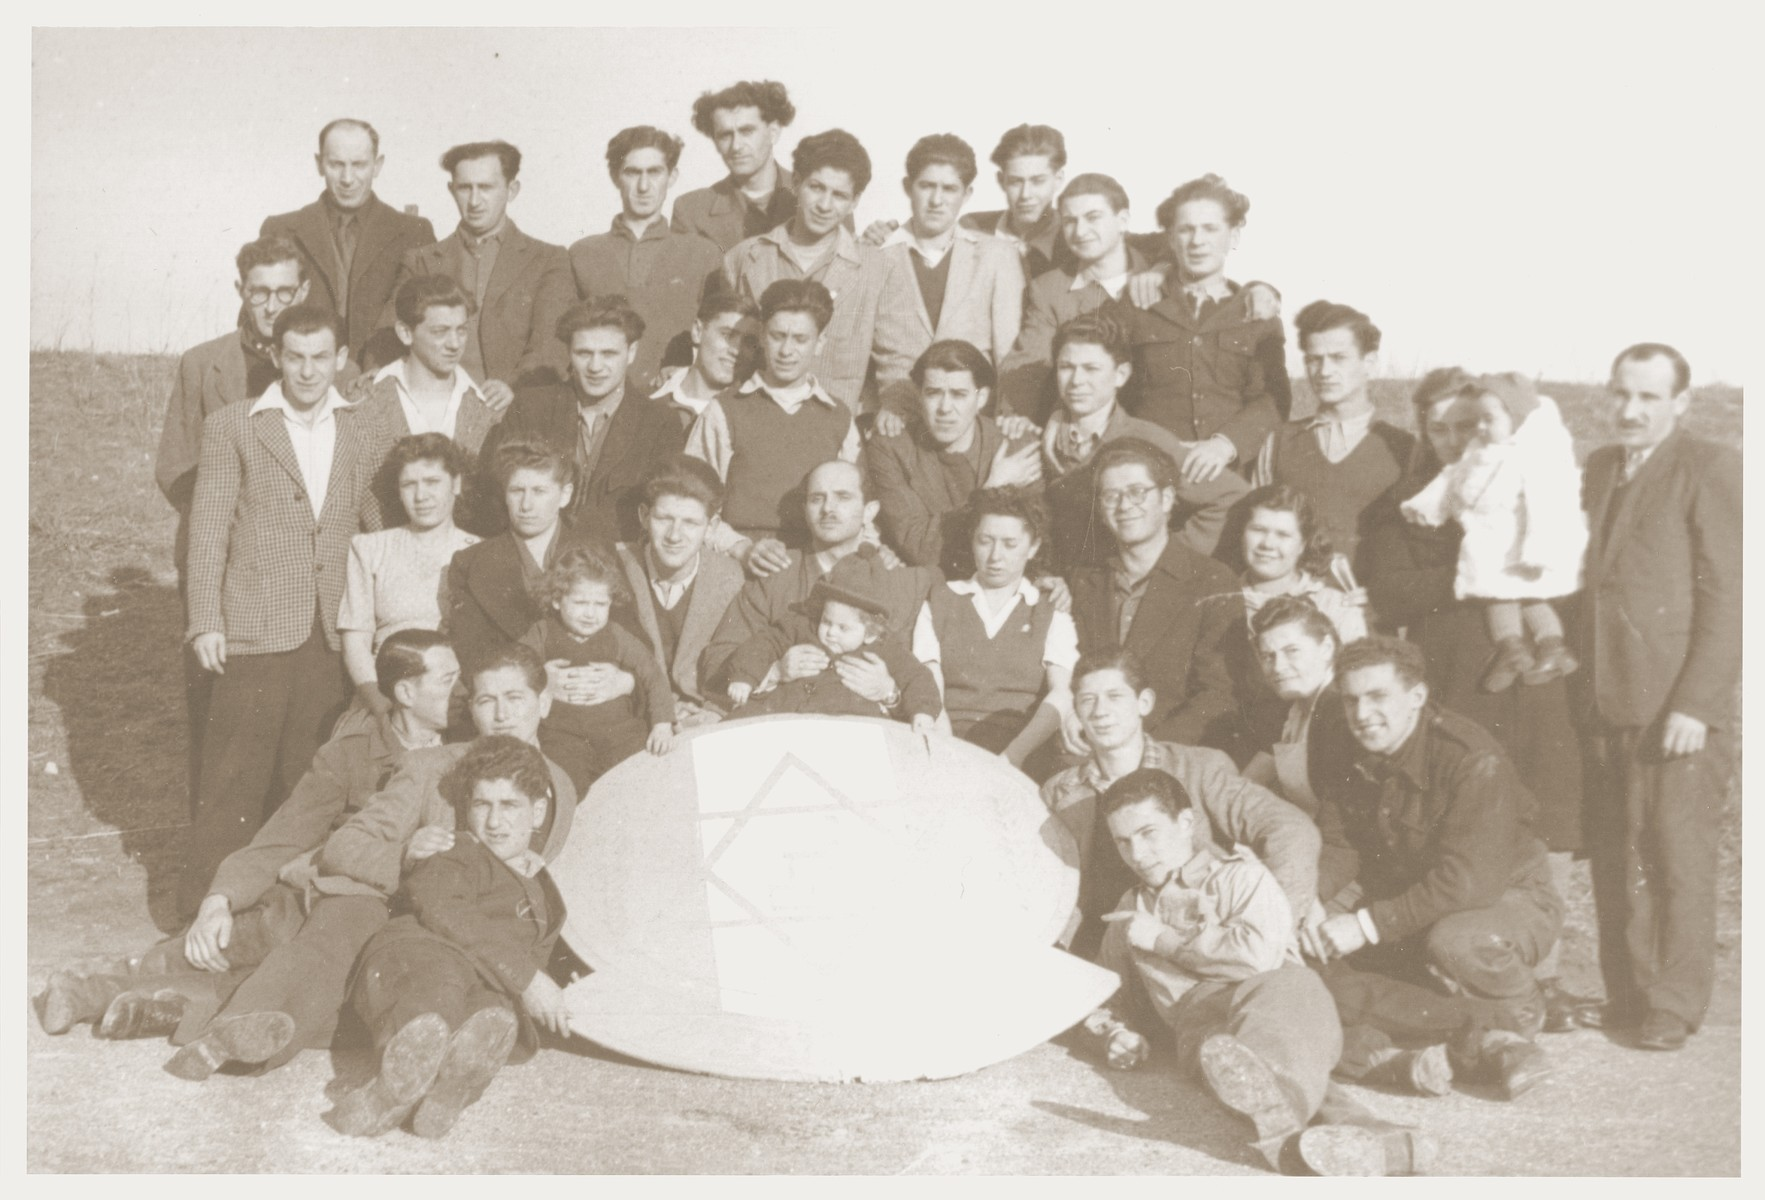 "Group portrait of the members of the Kibbutz Nili hachshara (Zionist collective) in Pleikershof, Germany, posing around a large plaque inscribed with a Star of David and the Hebrew word ""Nachem"" (comfort).    Seated in the center is Noach Miedzinski holding his daughter Nili.  On the far right is Aaron Charny standing next to his daughter."